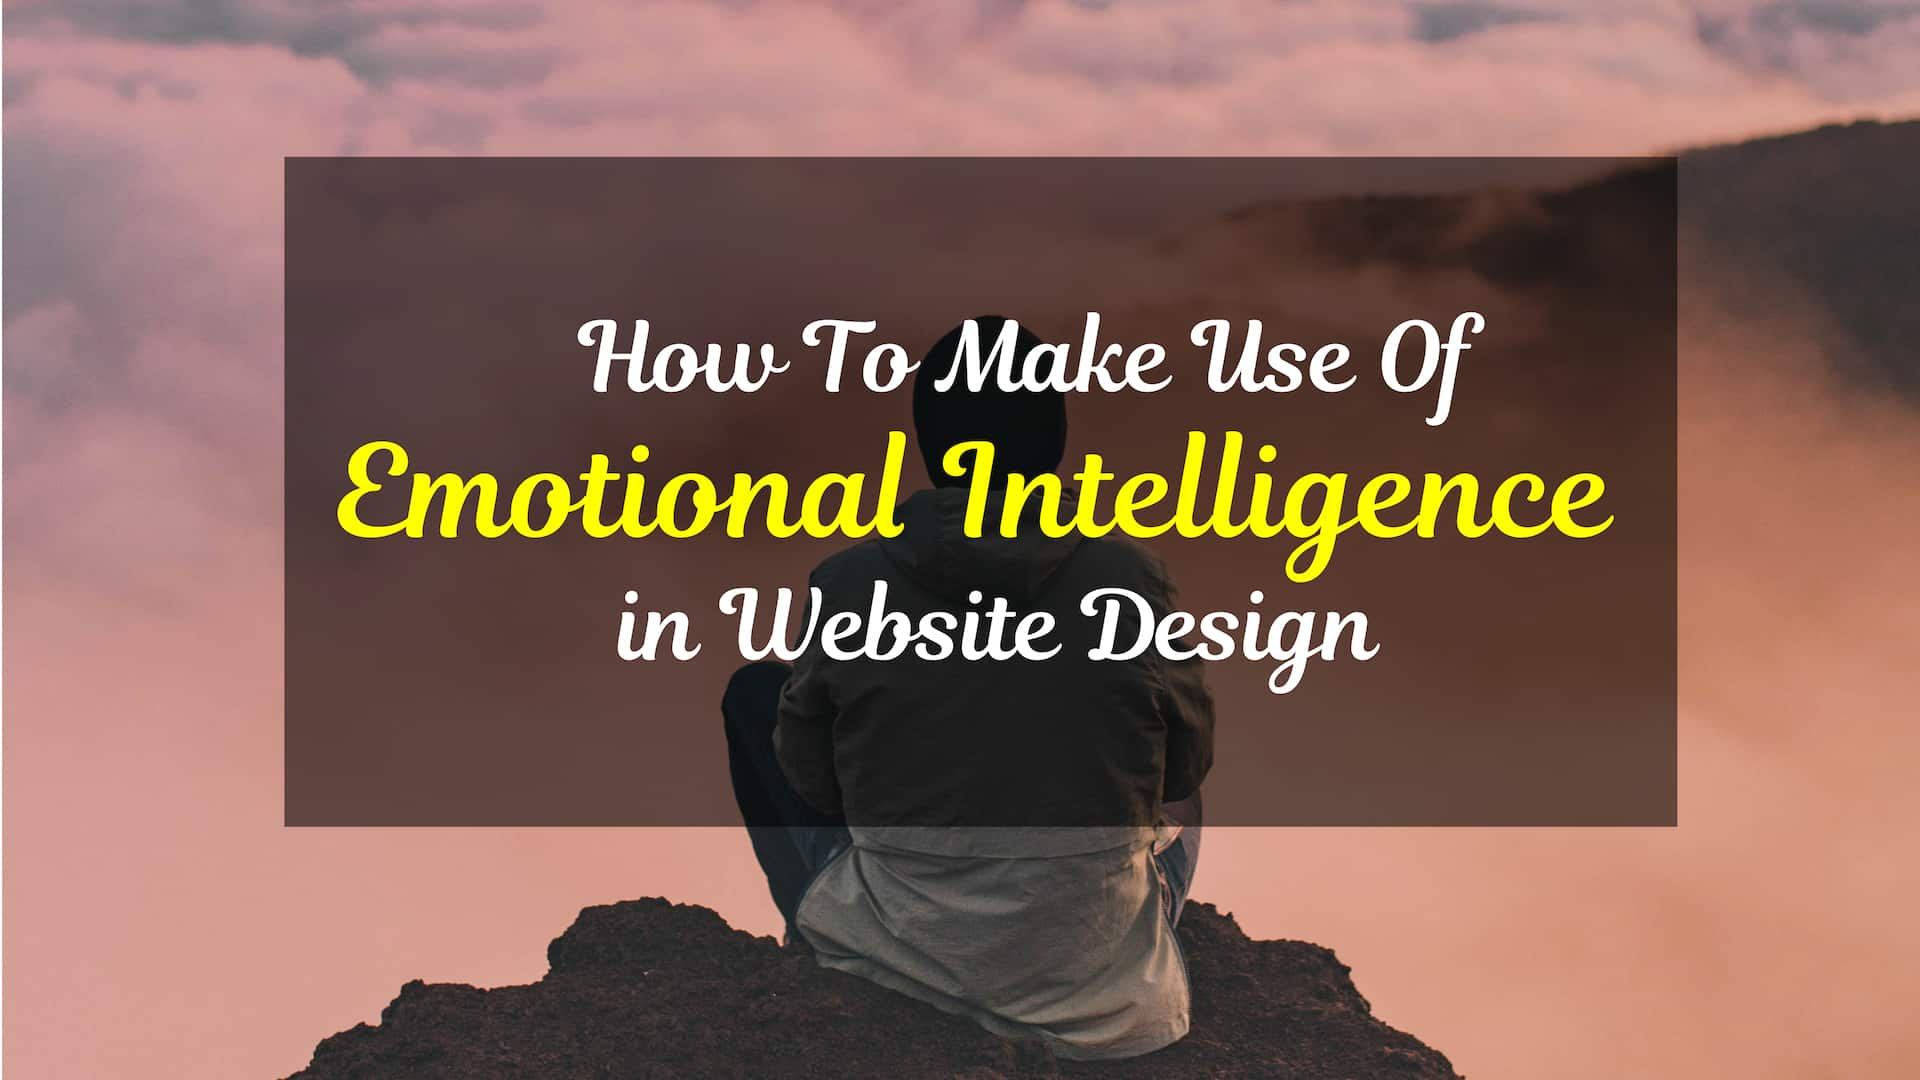 Emotional Intelligence In Web Design. What It Is, Why You Need It & How to Get It